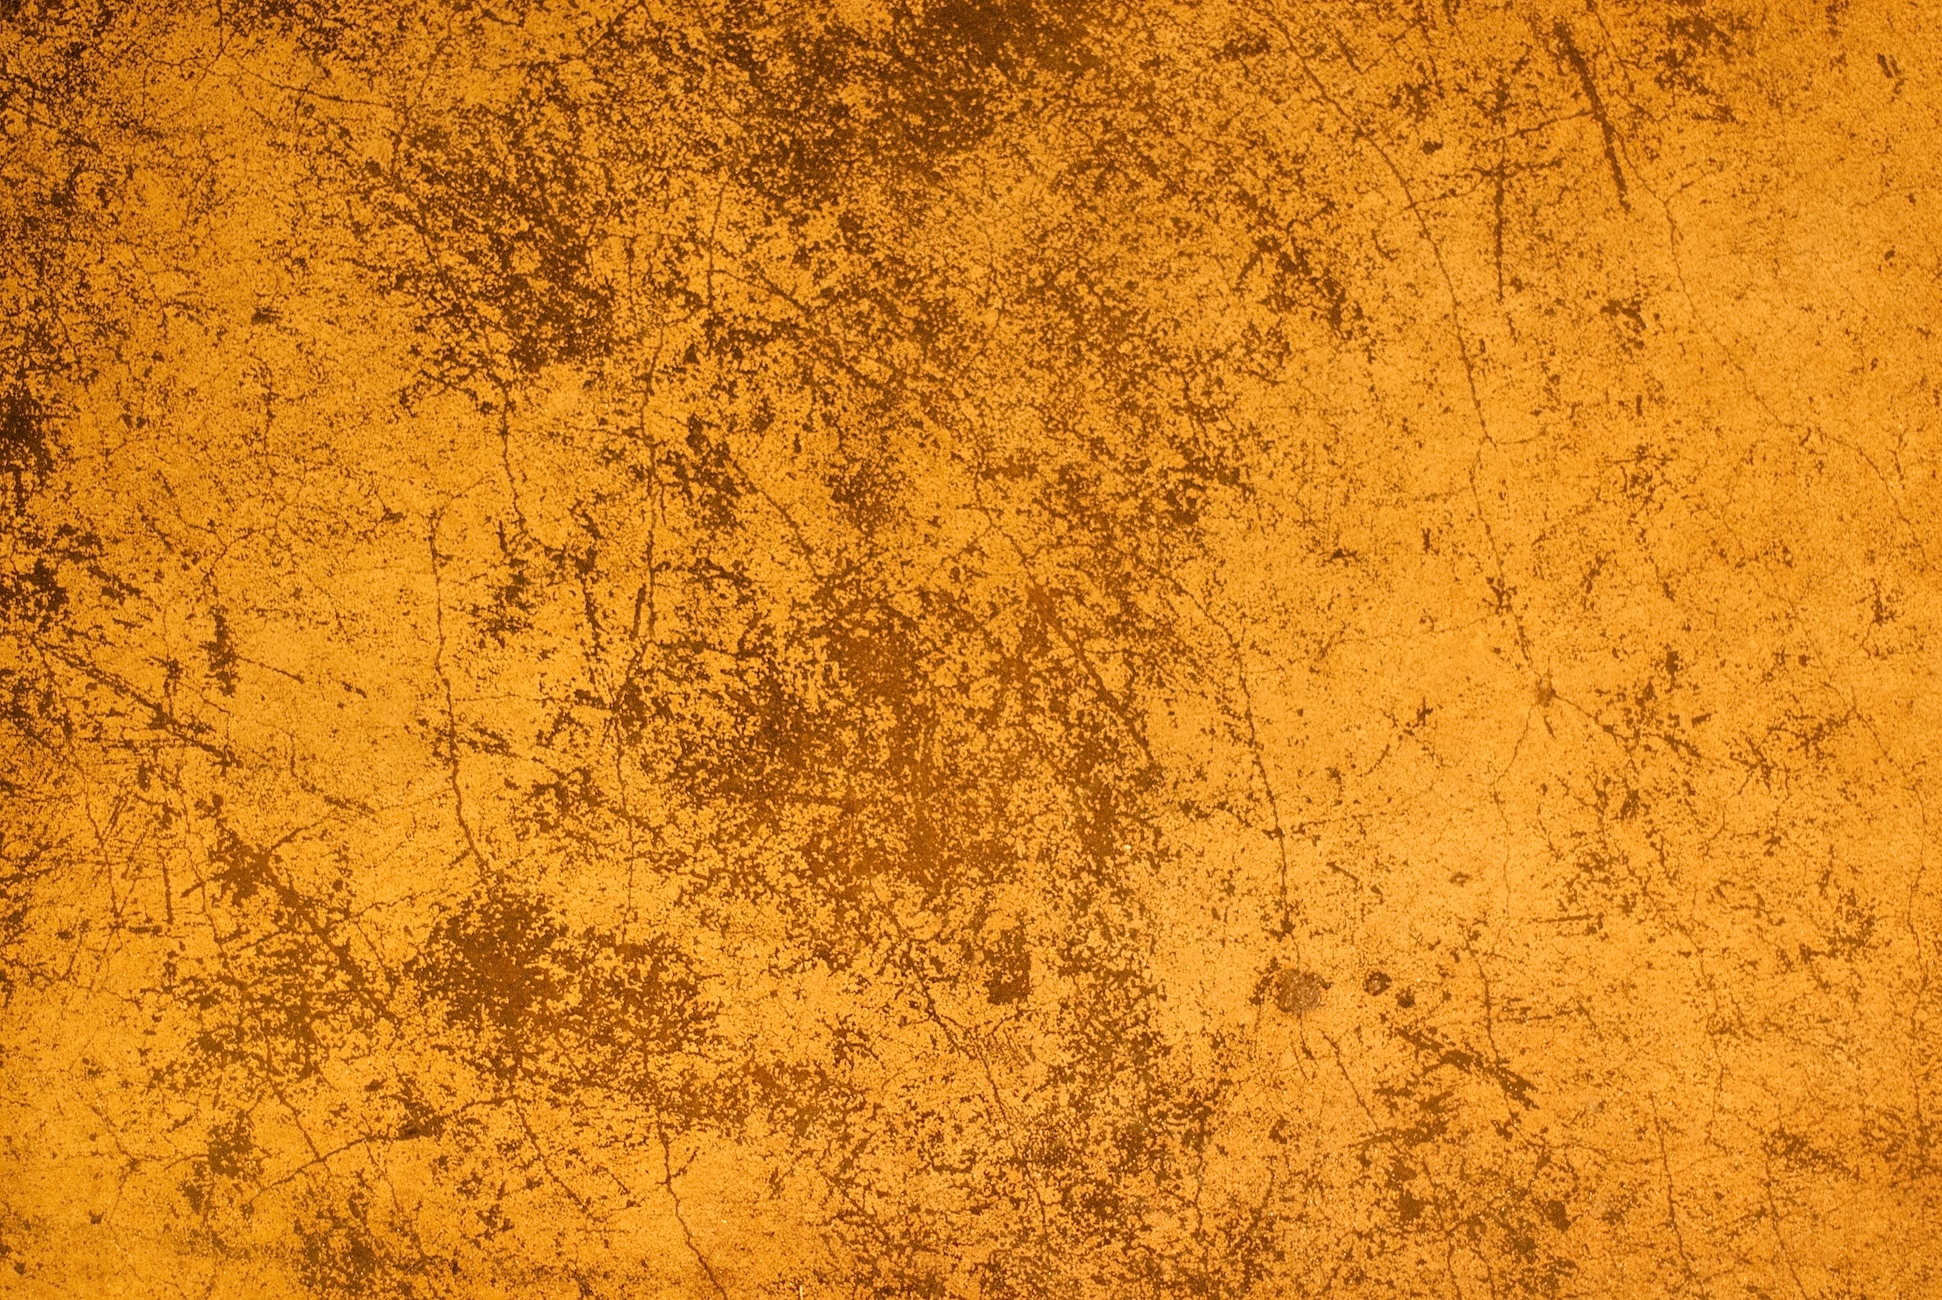 3d Wallpaper Yellow Texture Scratchy Brown Concrete This Is A Free Texture